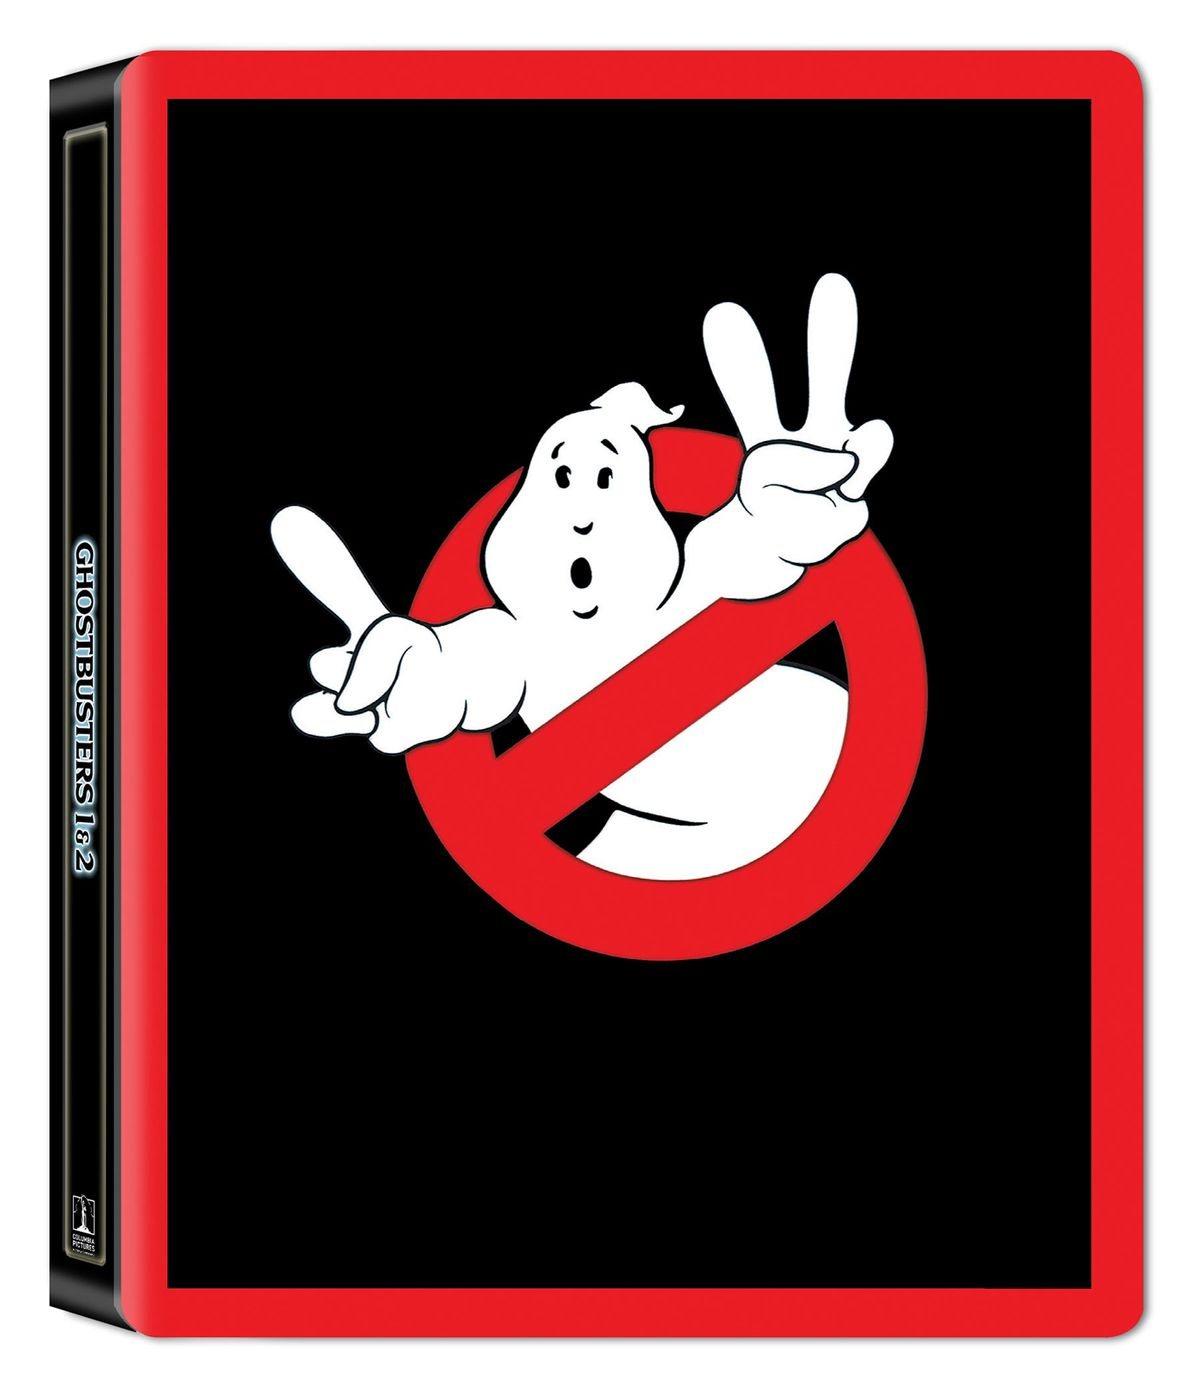 Ghostbusters 35th Anniversary 4K Ultra HD Blu-ray Limited Edition Steelbook